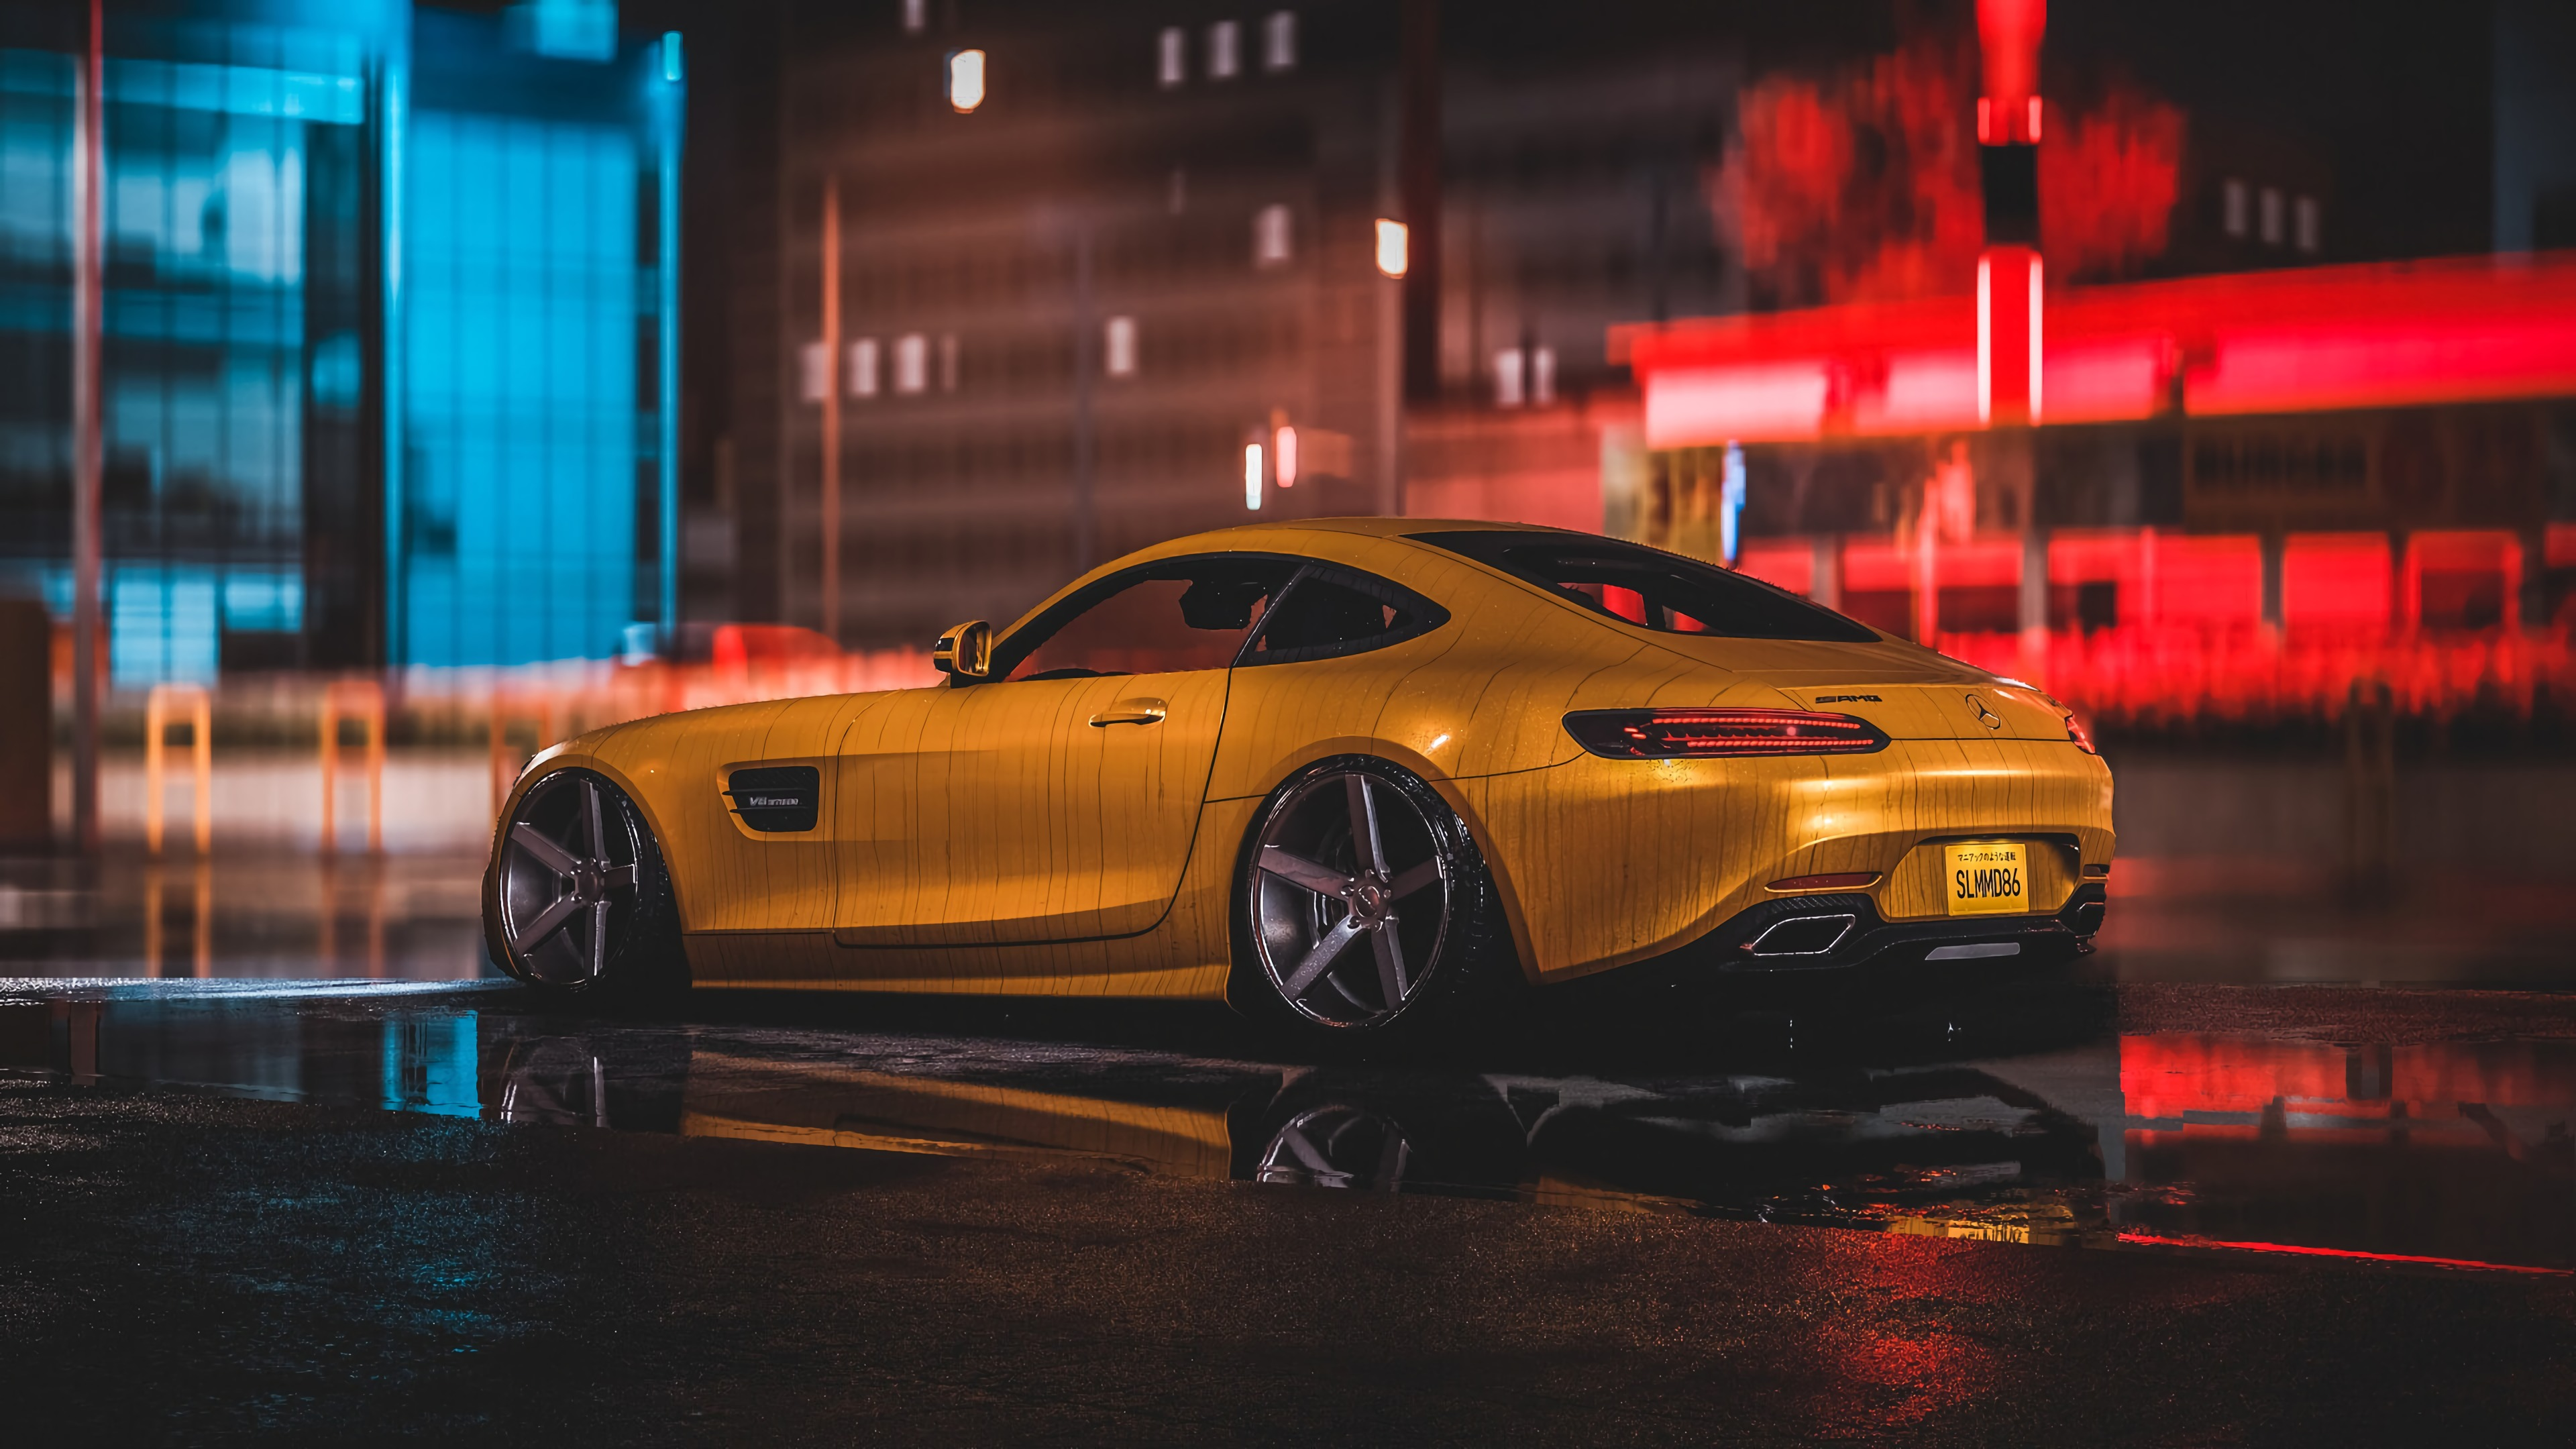 Mercedes Amg Yellow 4k, HD Cars, 4k Wallpapers, Images ...